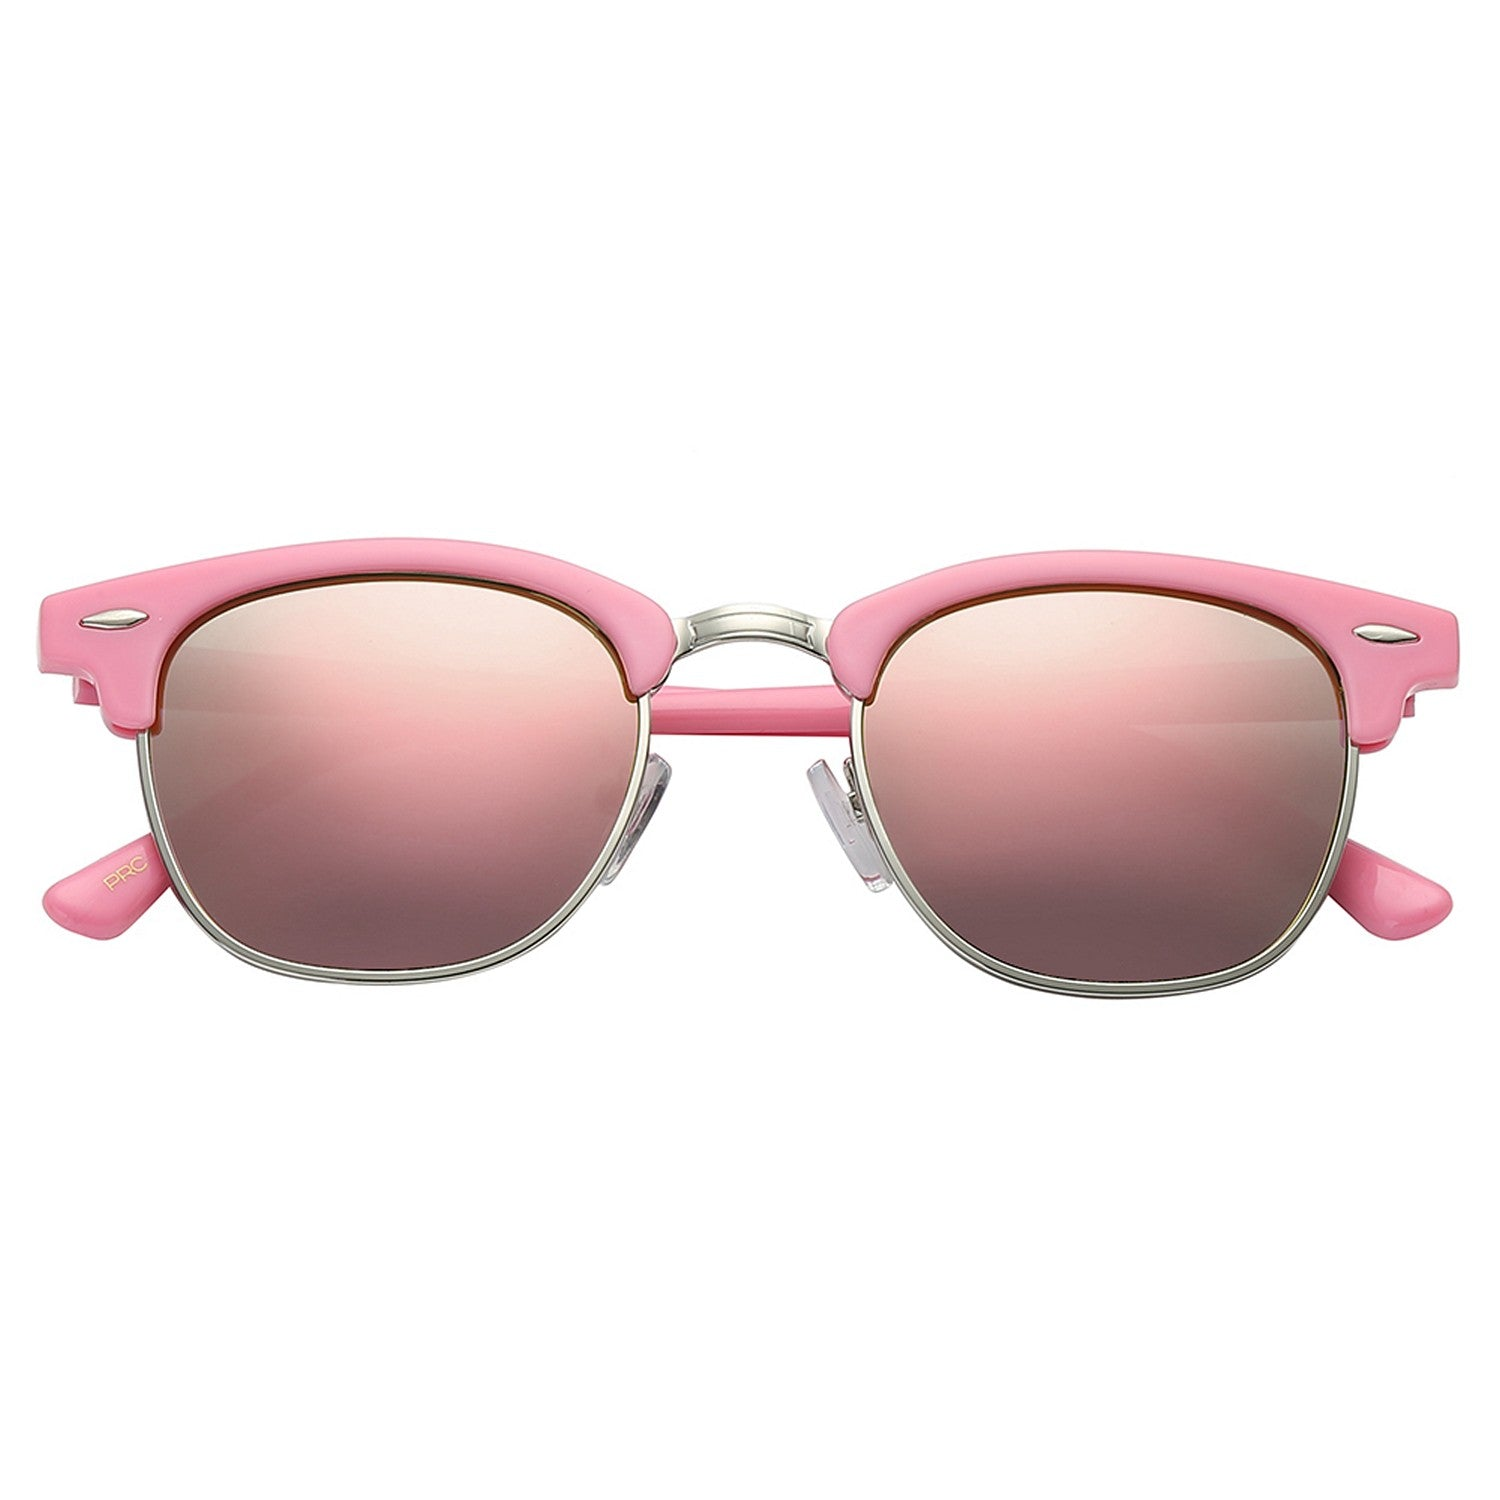 Polarspex Polarized Malcom Half Frame Semi-Rimless Style Unisex Sunglasses with Princess Pink Frames and Pink Quartz Lenses